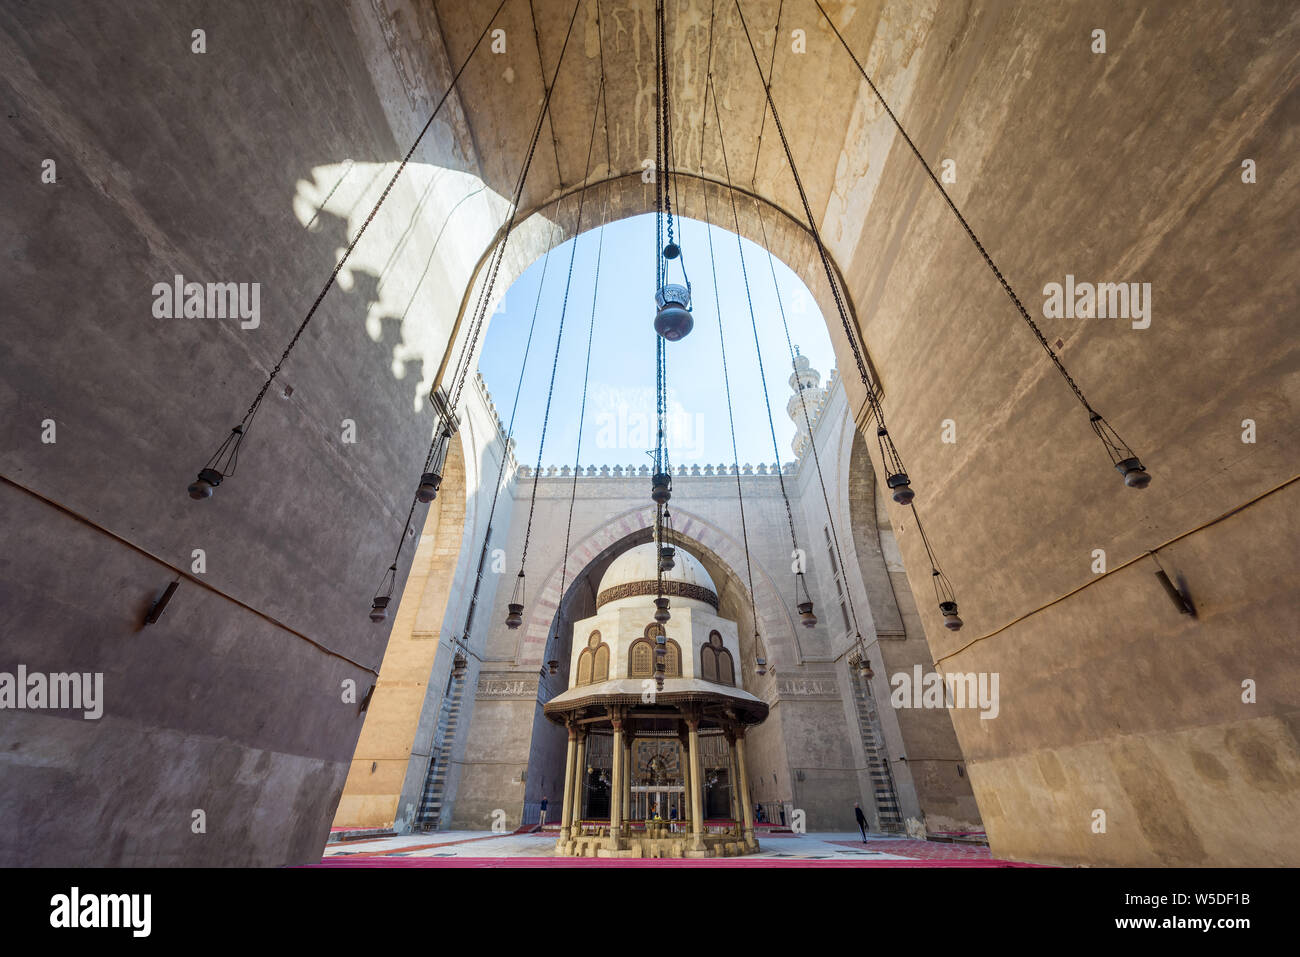 Cairo, Egypt - December 16, 2017: Courtyard of the Mosque of Sultan Hasan with Ablution fountain and huge arch, and few tourists visiting the place at the early morning Stock Photo